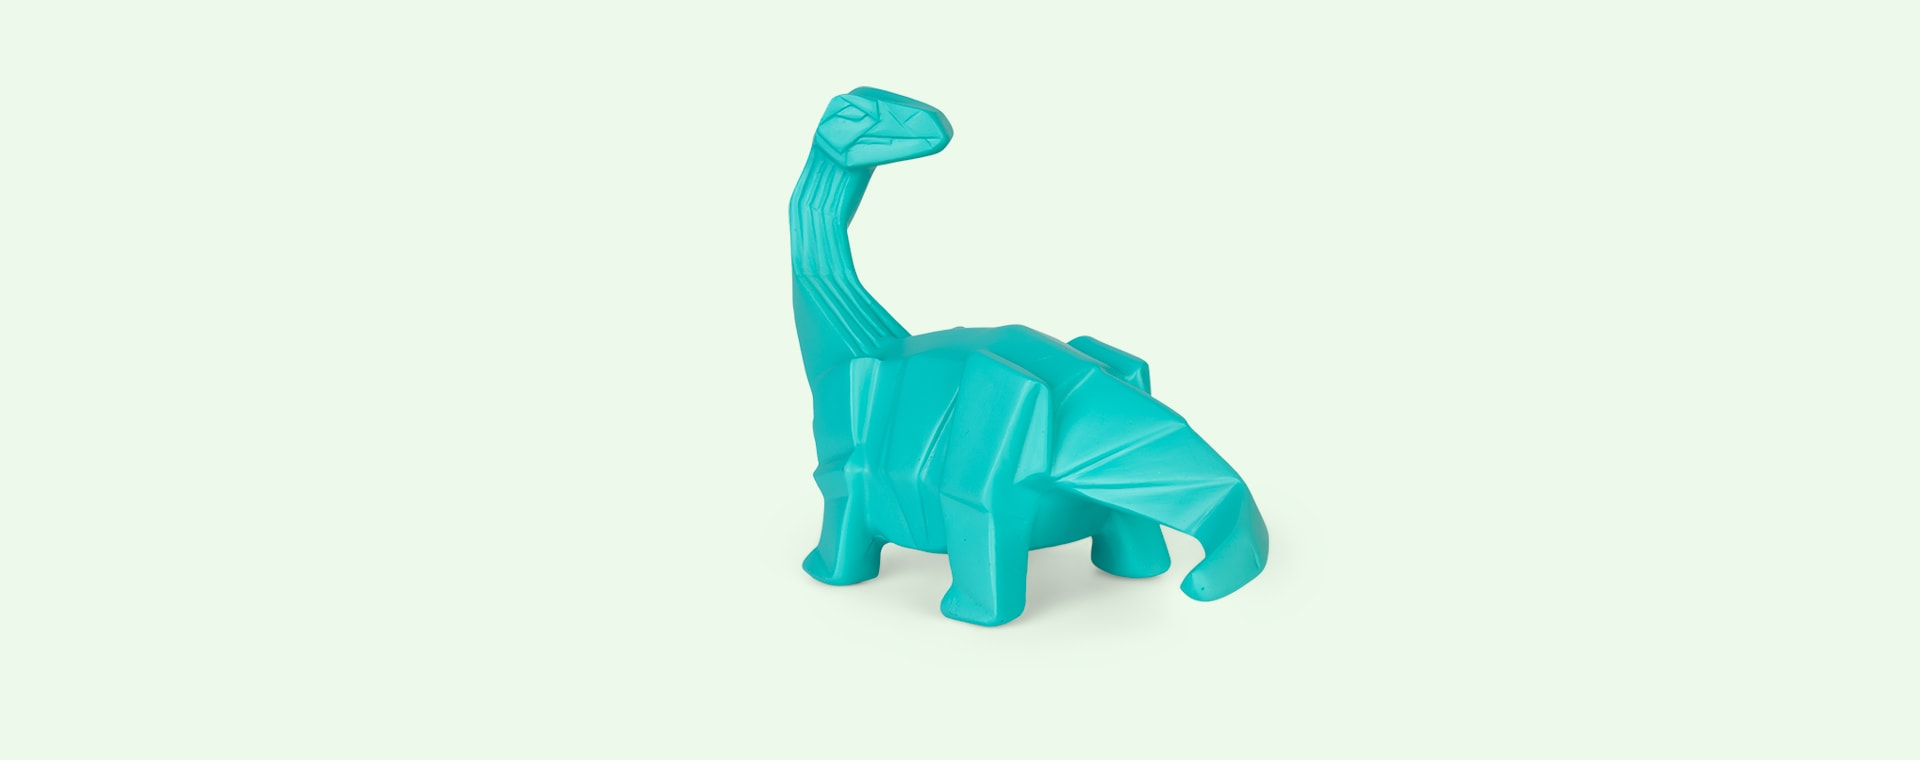 Brachiosaurus House of Disaster Origami Dinosaur LED Lamp